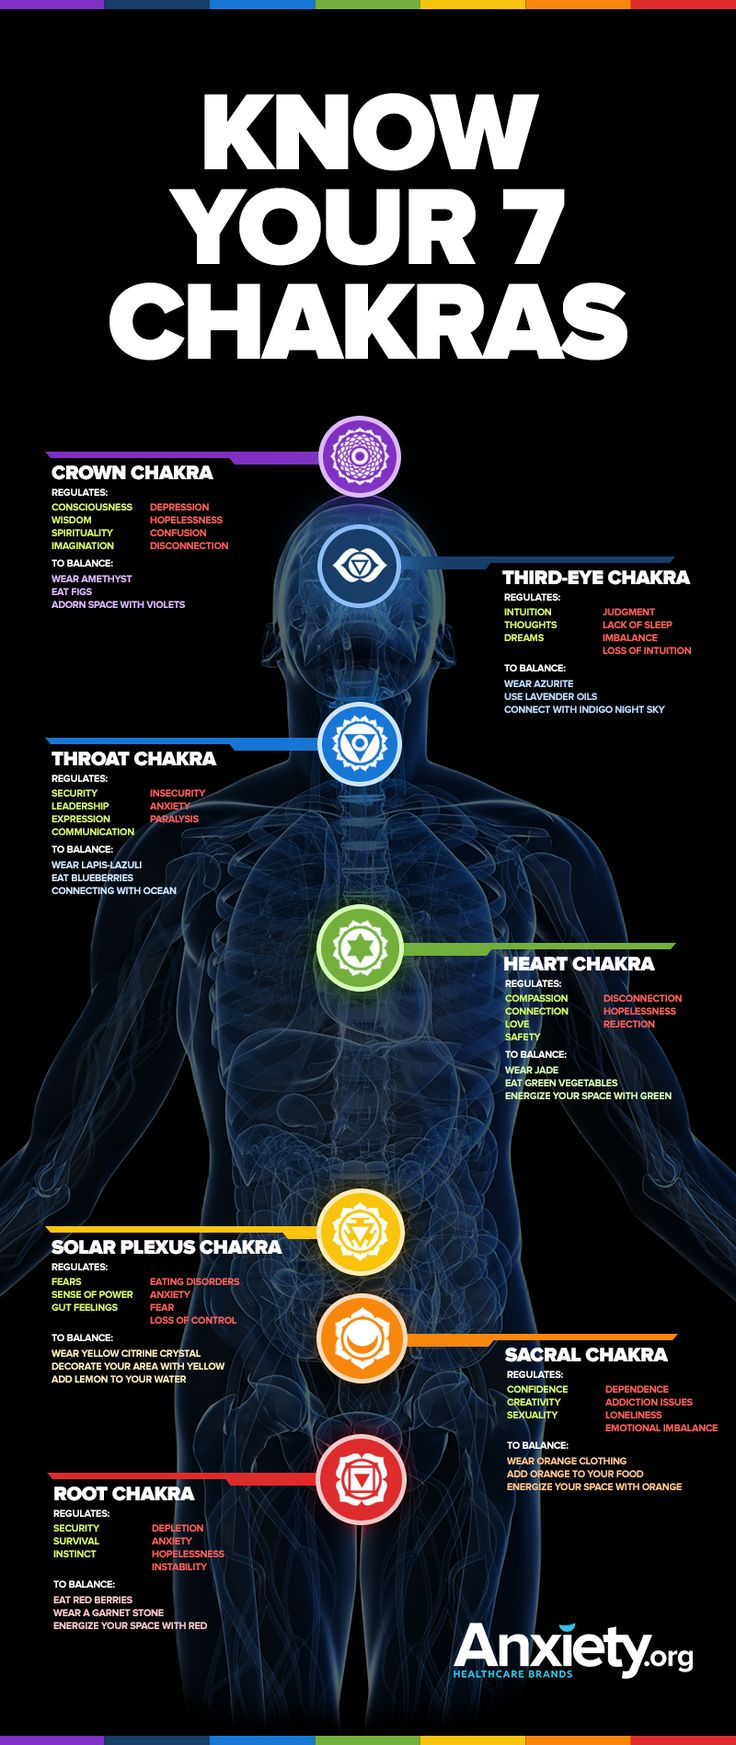 Balanced Chakras Reduce Anxiety | Chakra balancing tips infographic | Meditation | Mindfulness | Mental health & self-care